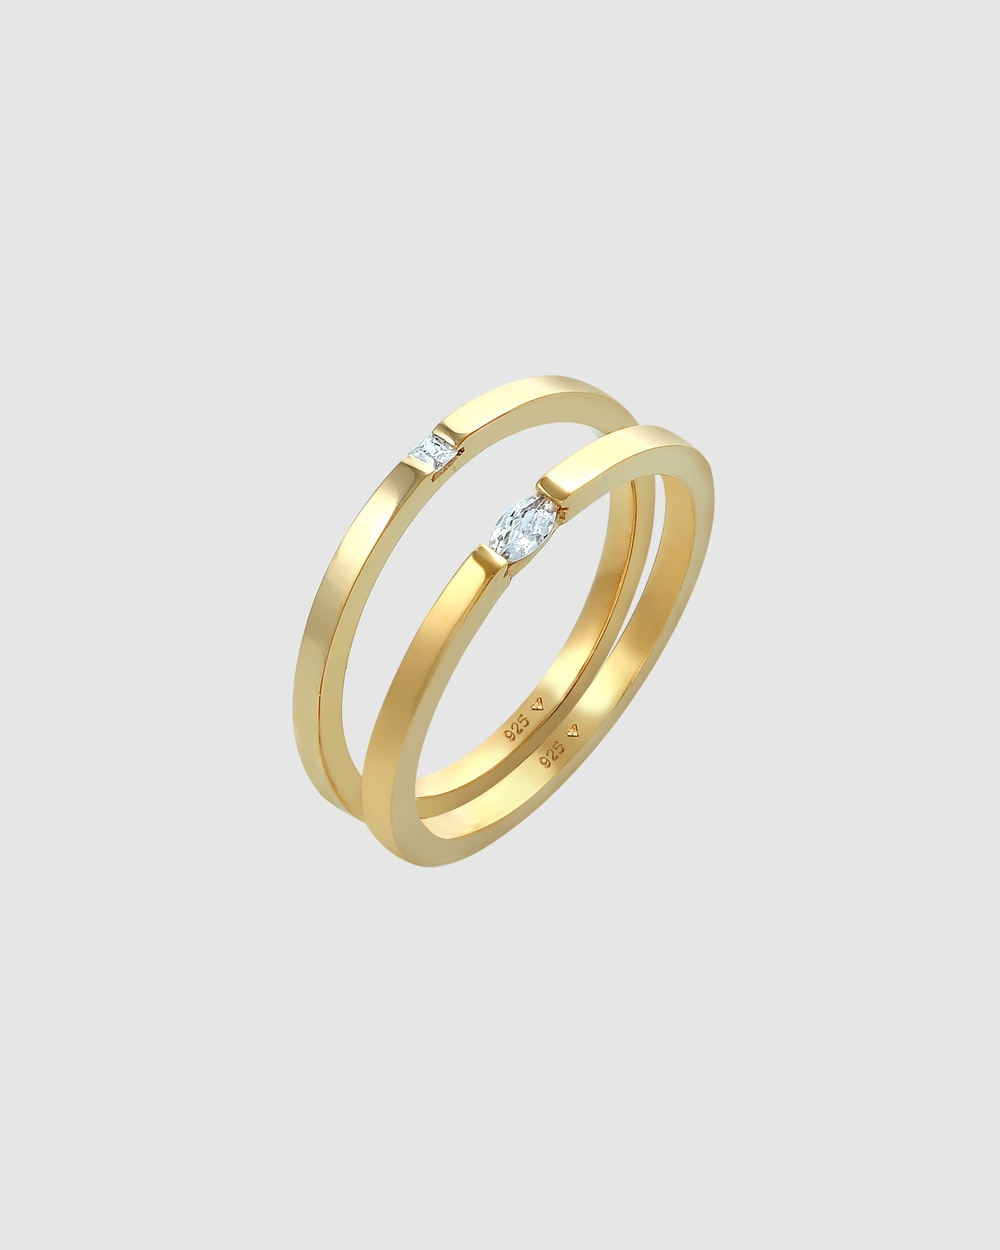 Elli Jewelry Ring Solitaire Classic Set of 2 with Zirconia Crystals in 925 Sterling Silver Gold Plated Jewellery white